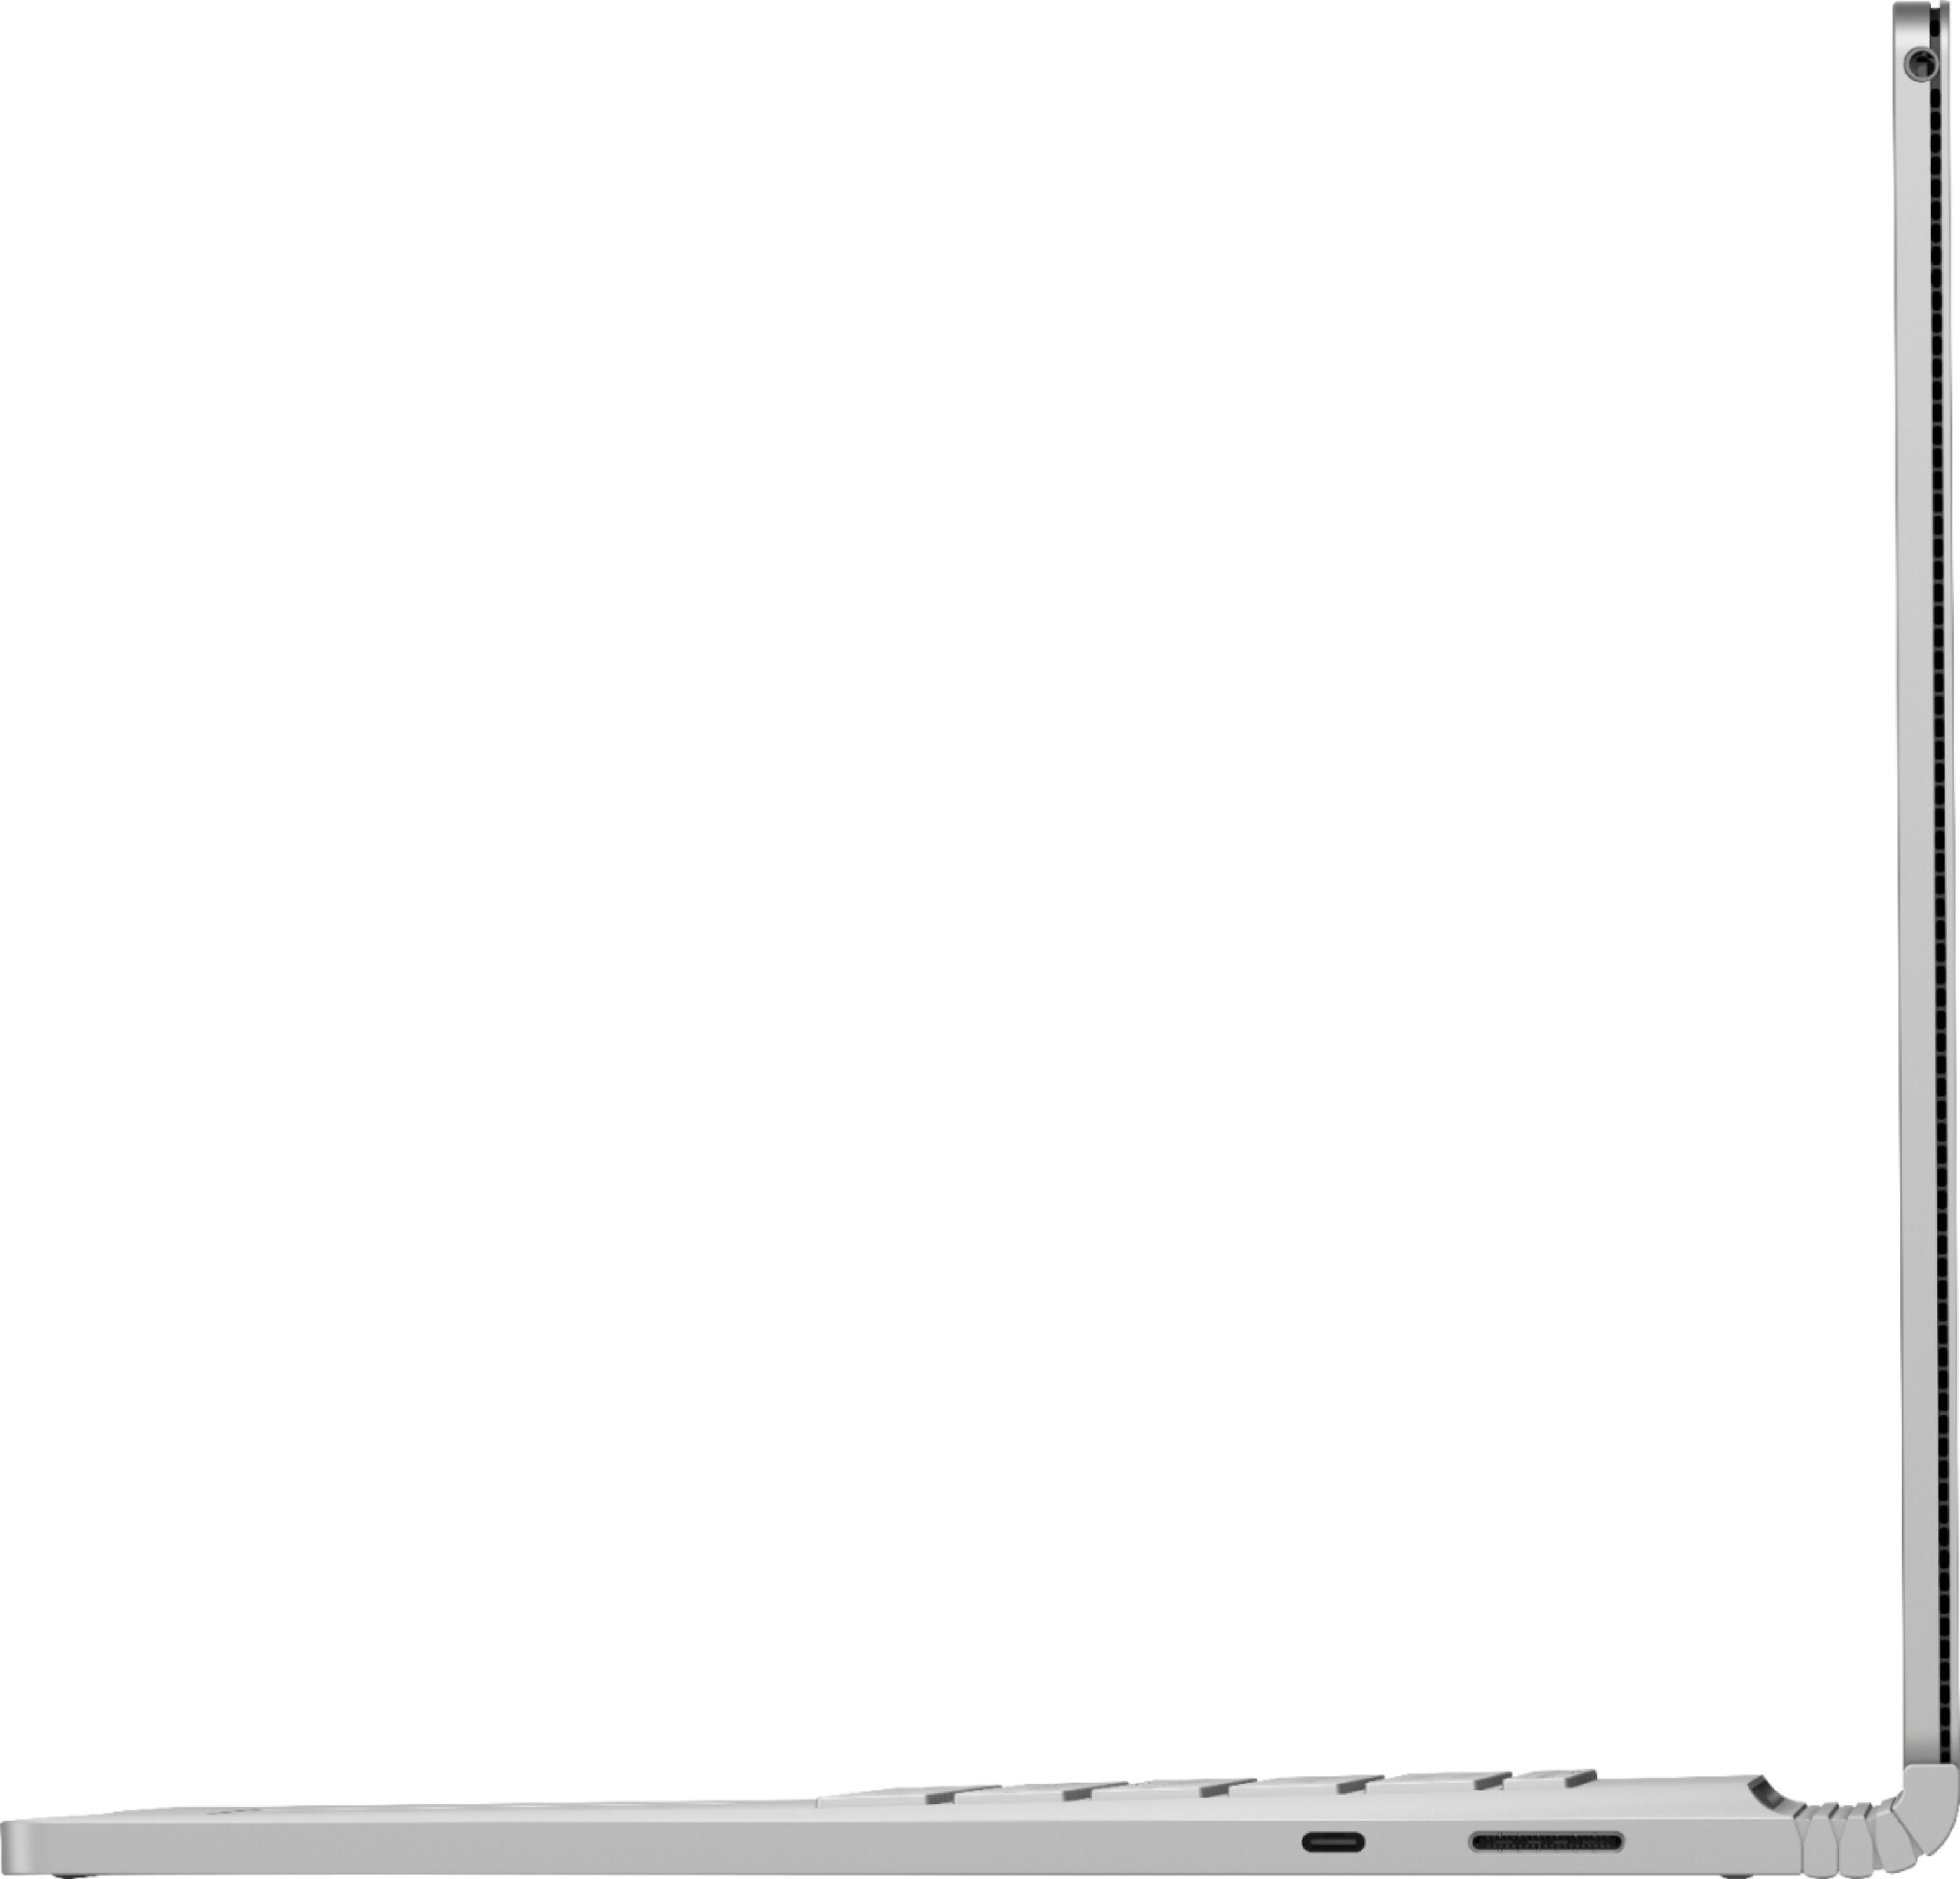 """Alt View Zoom 13. Microsoft - Surface Book 3 15"""" Touch-Screen PixelSense™ - 2-in-1 Laptop - Intel Core i7 - 16GB Memory - 256GB SSD - Platinum."""